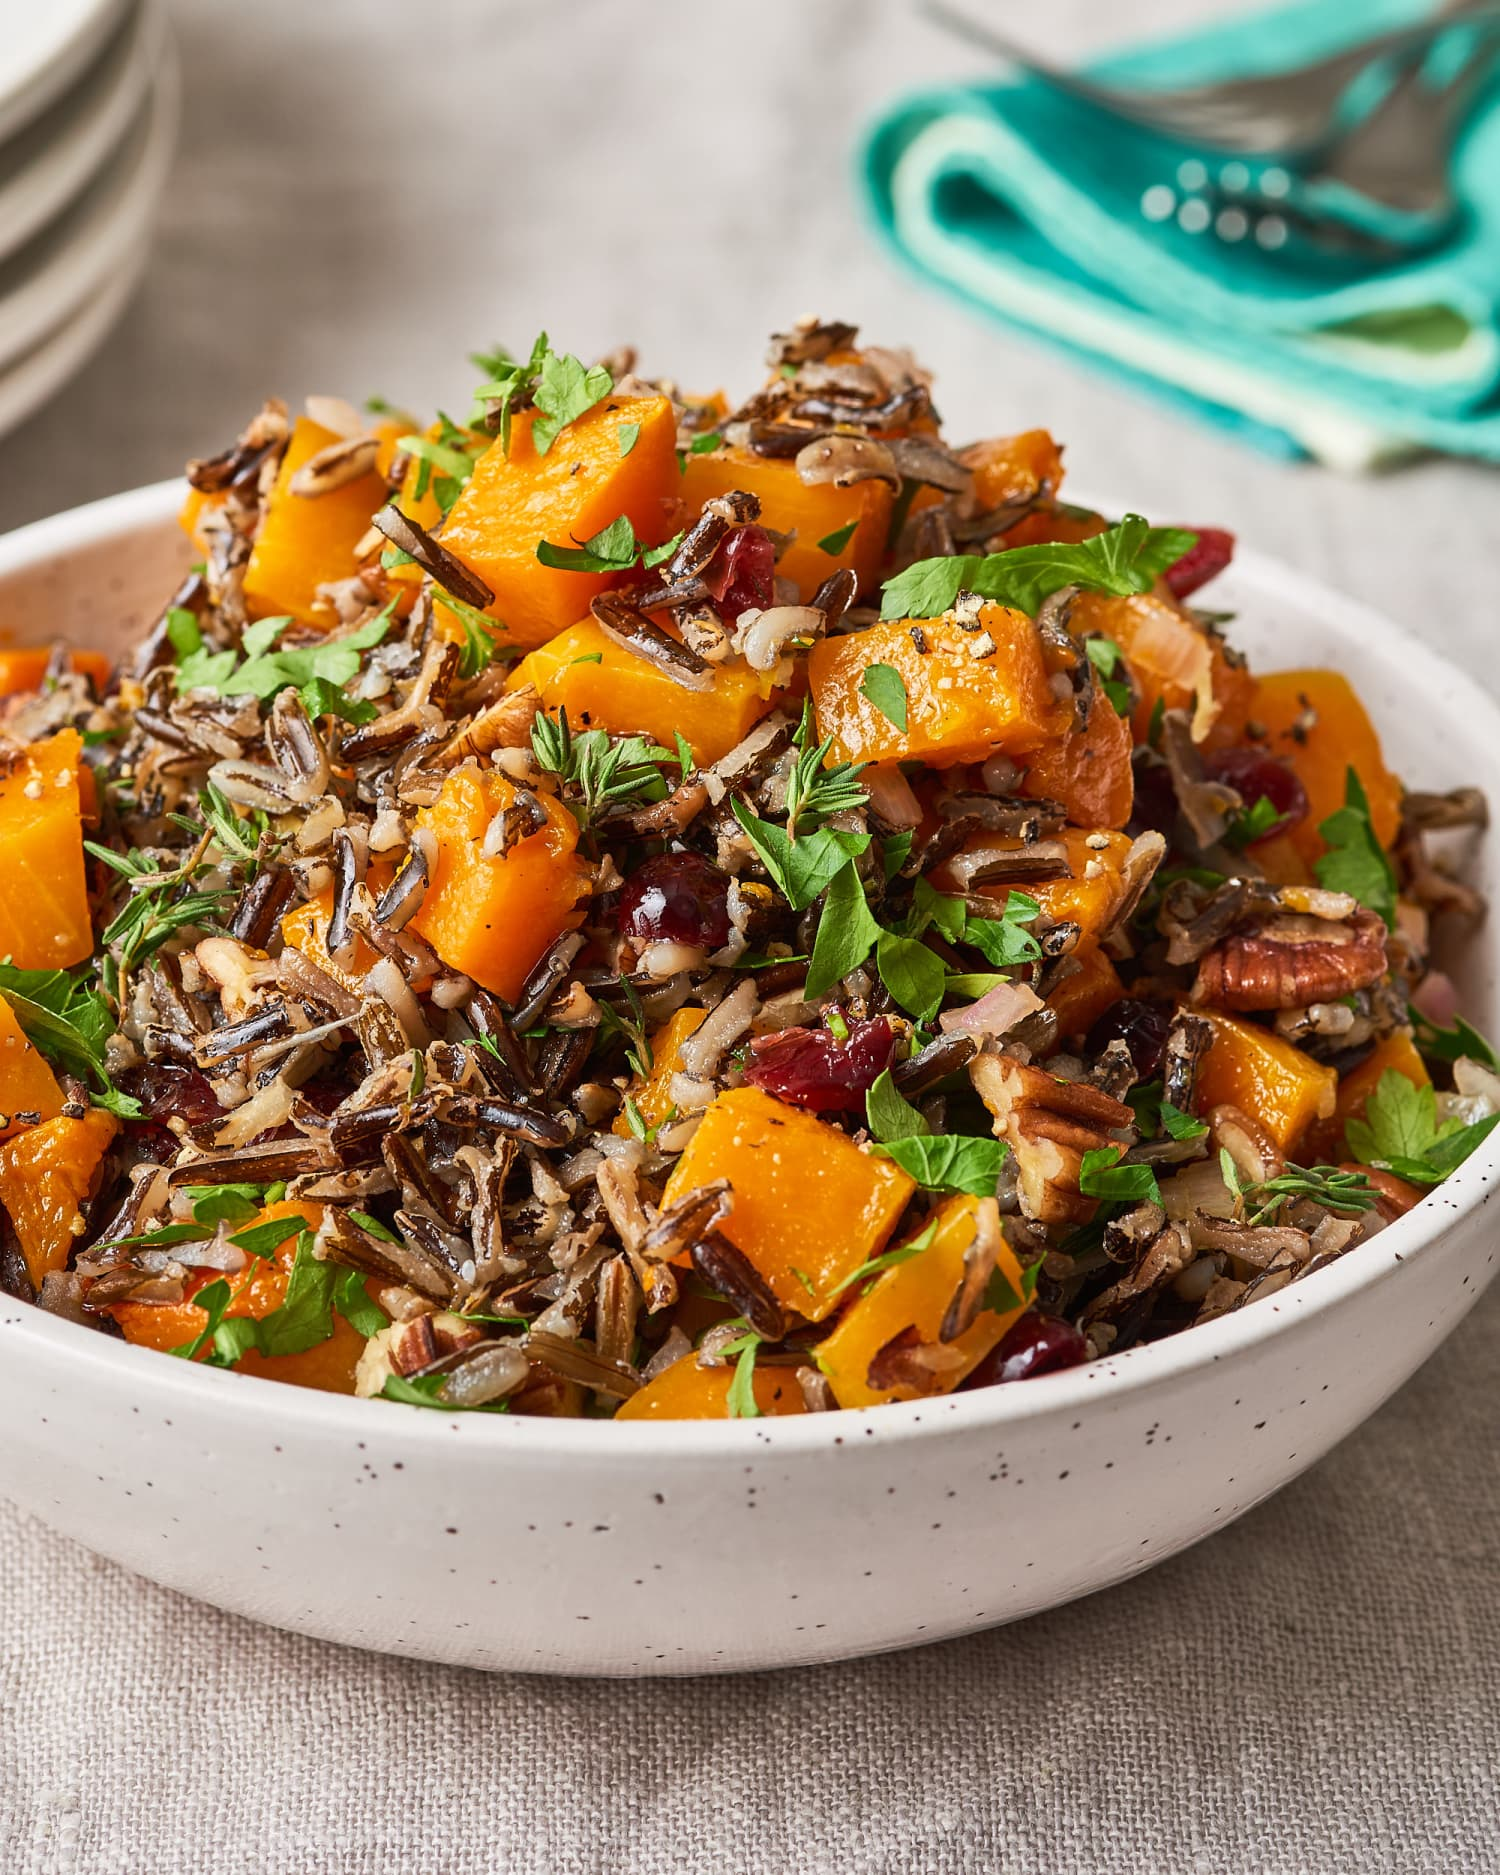 Recipe: Wild Rice Pilaf with Squash, Pecans, and Cranberries